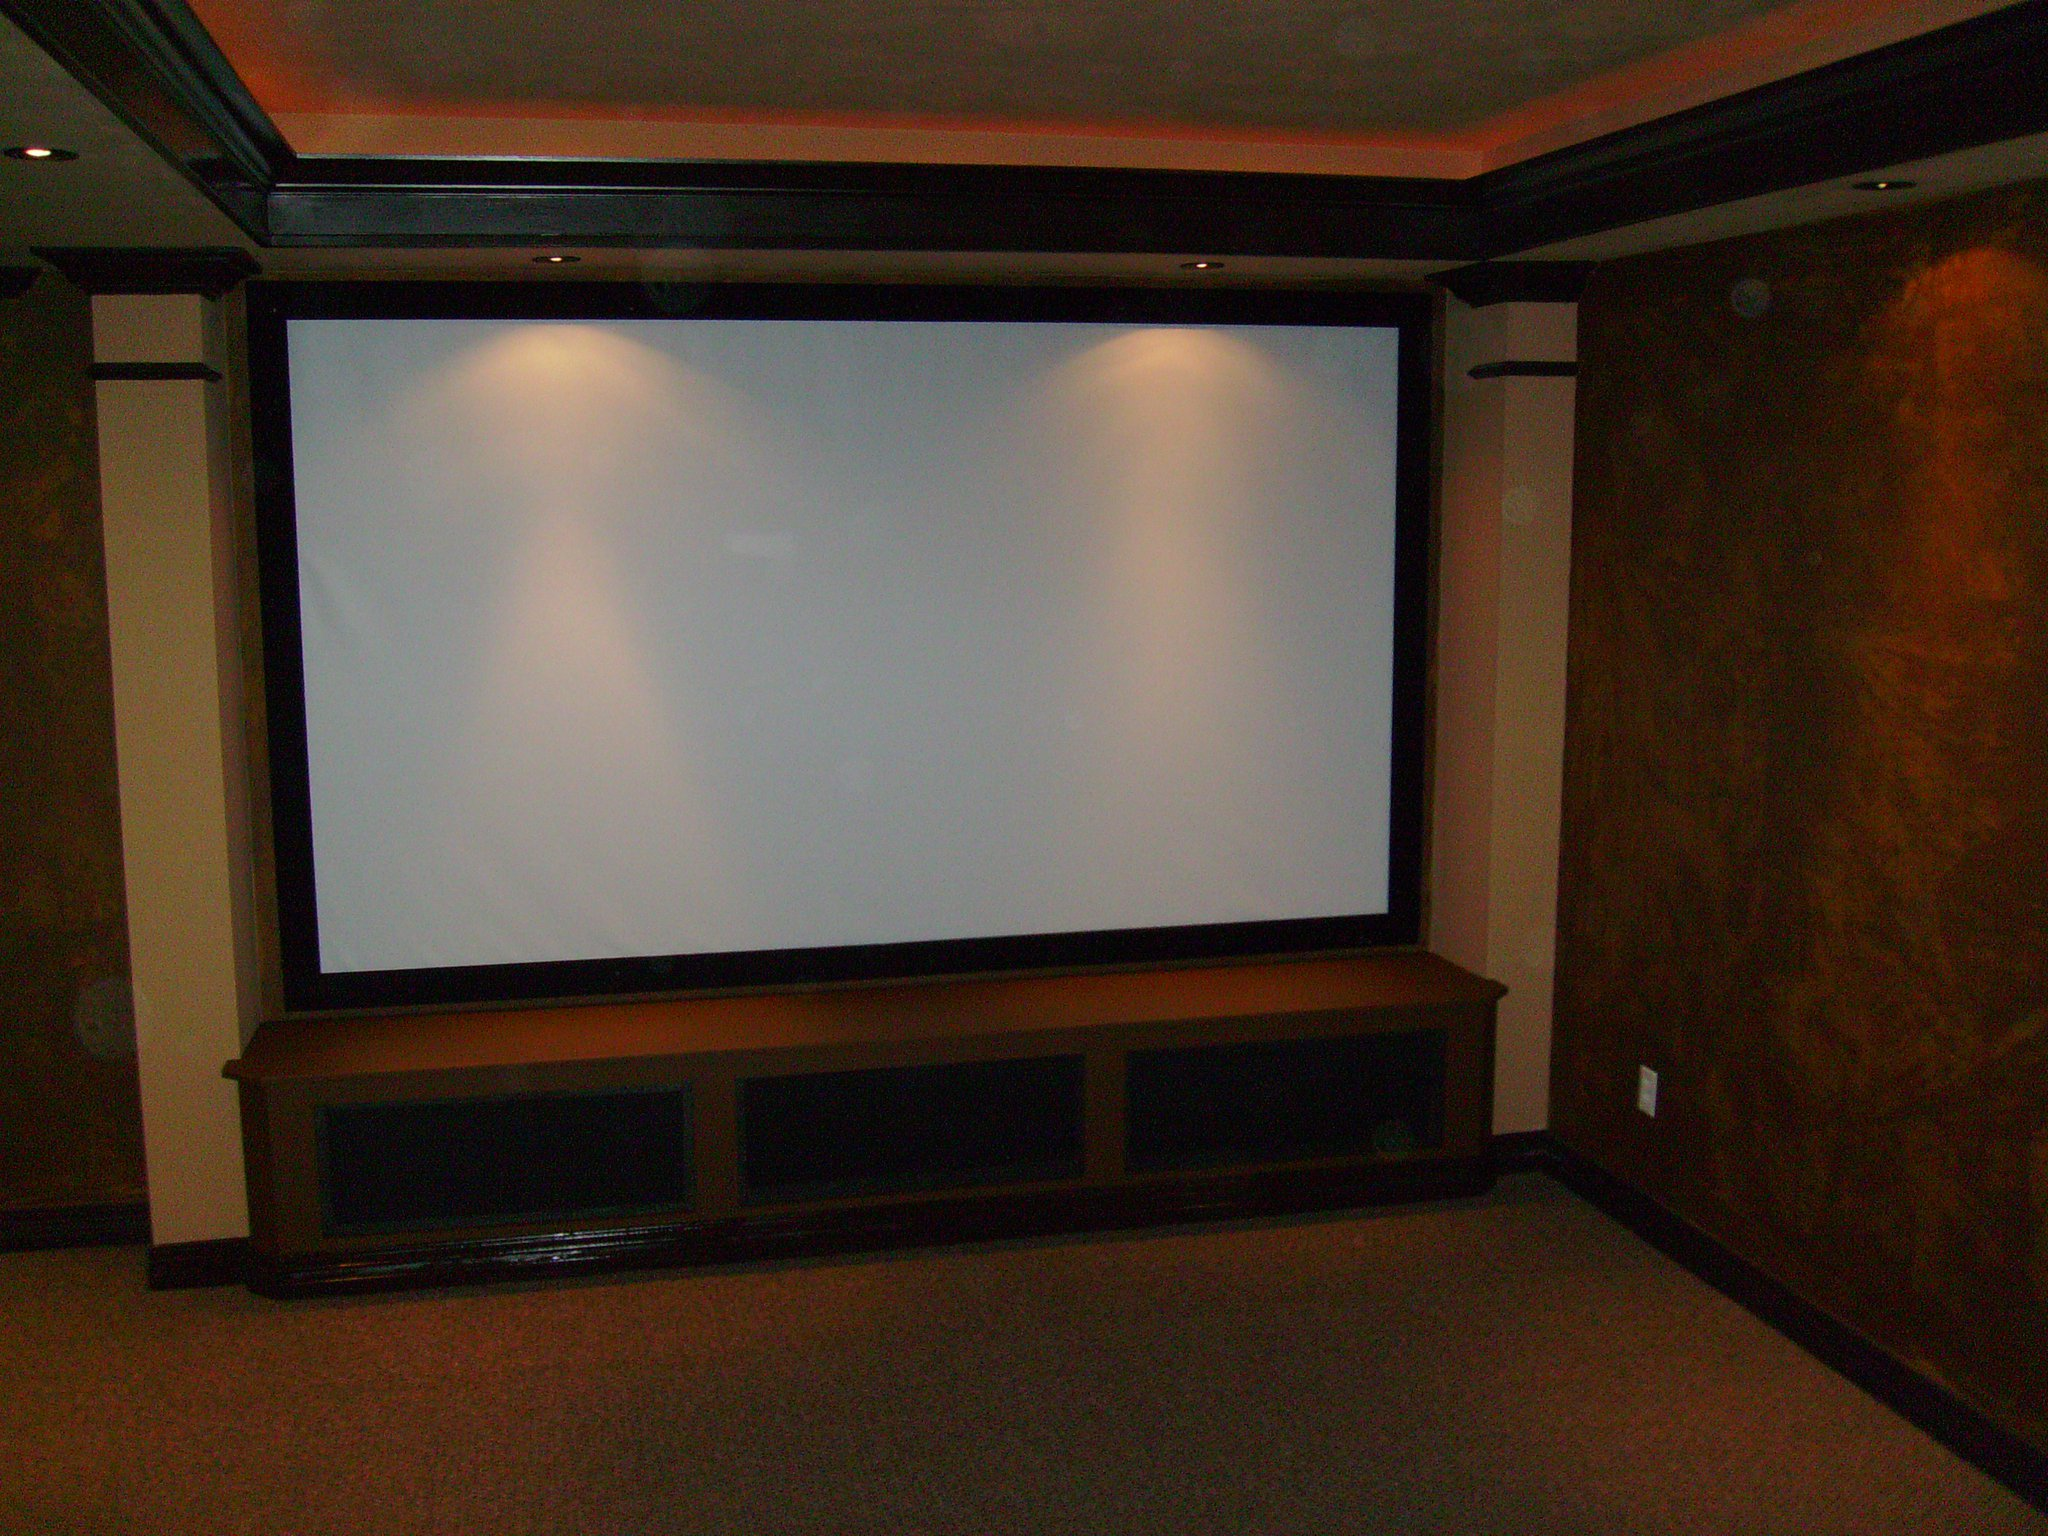 Media Rooms With Big Screen Tv Interior Design Company